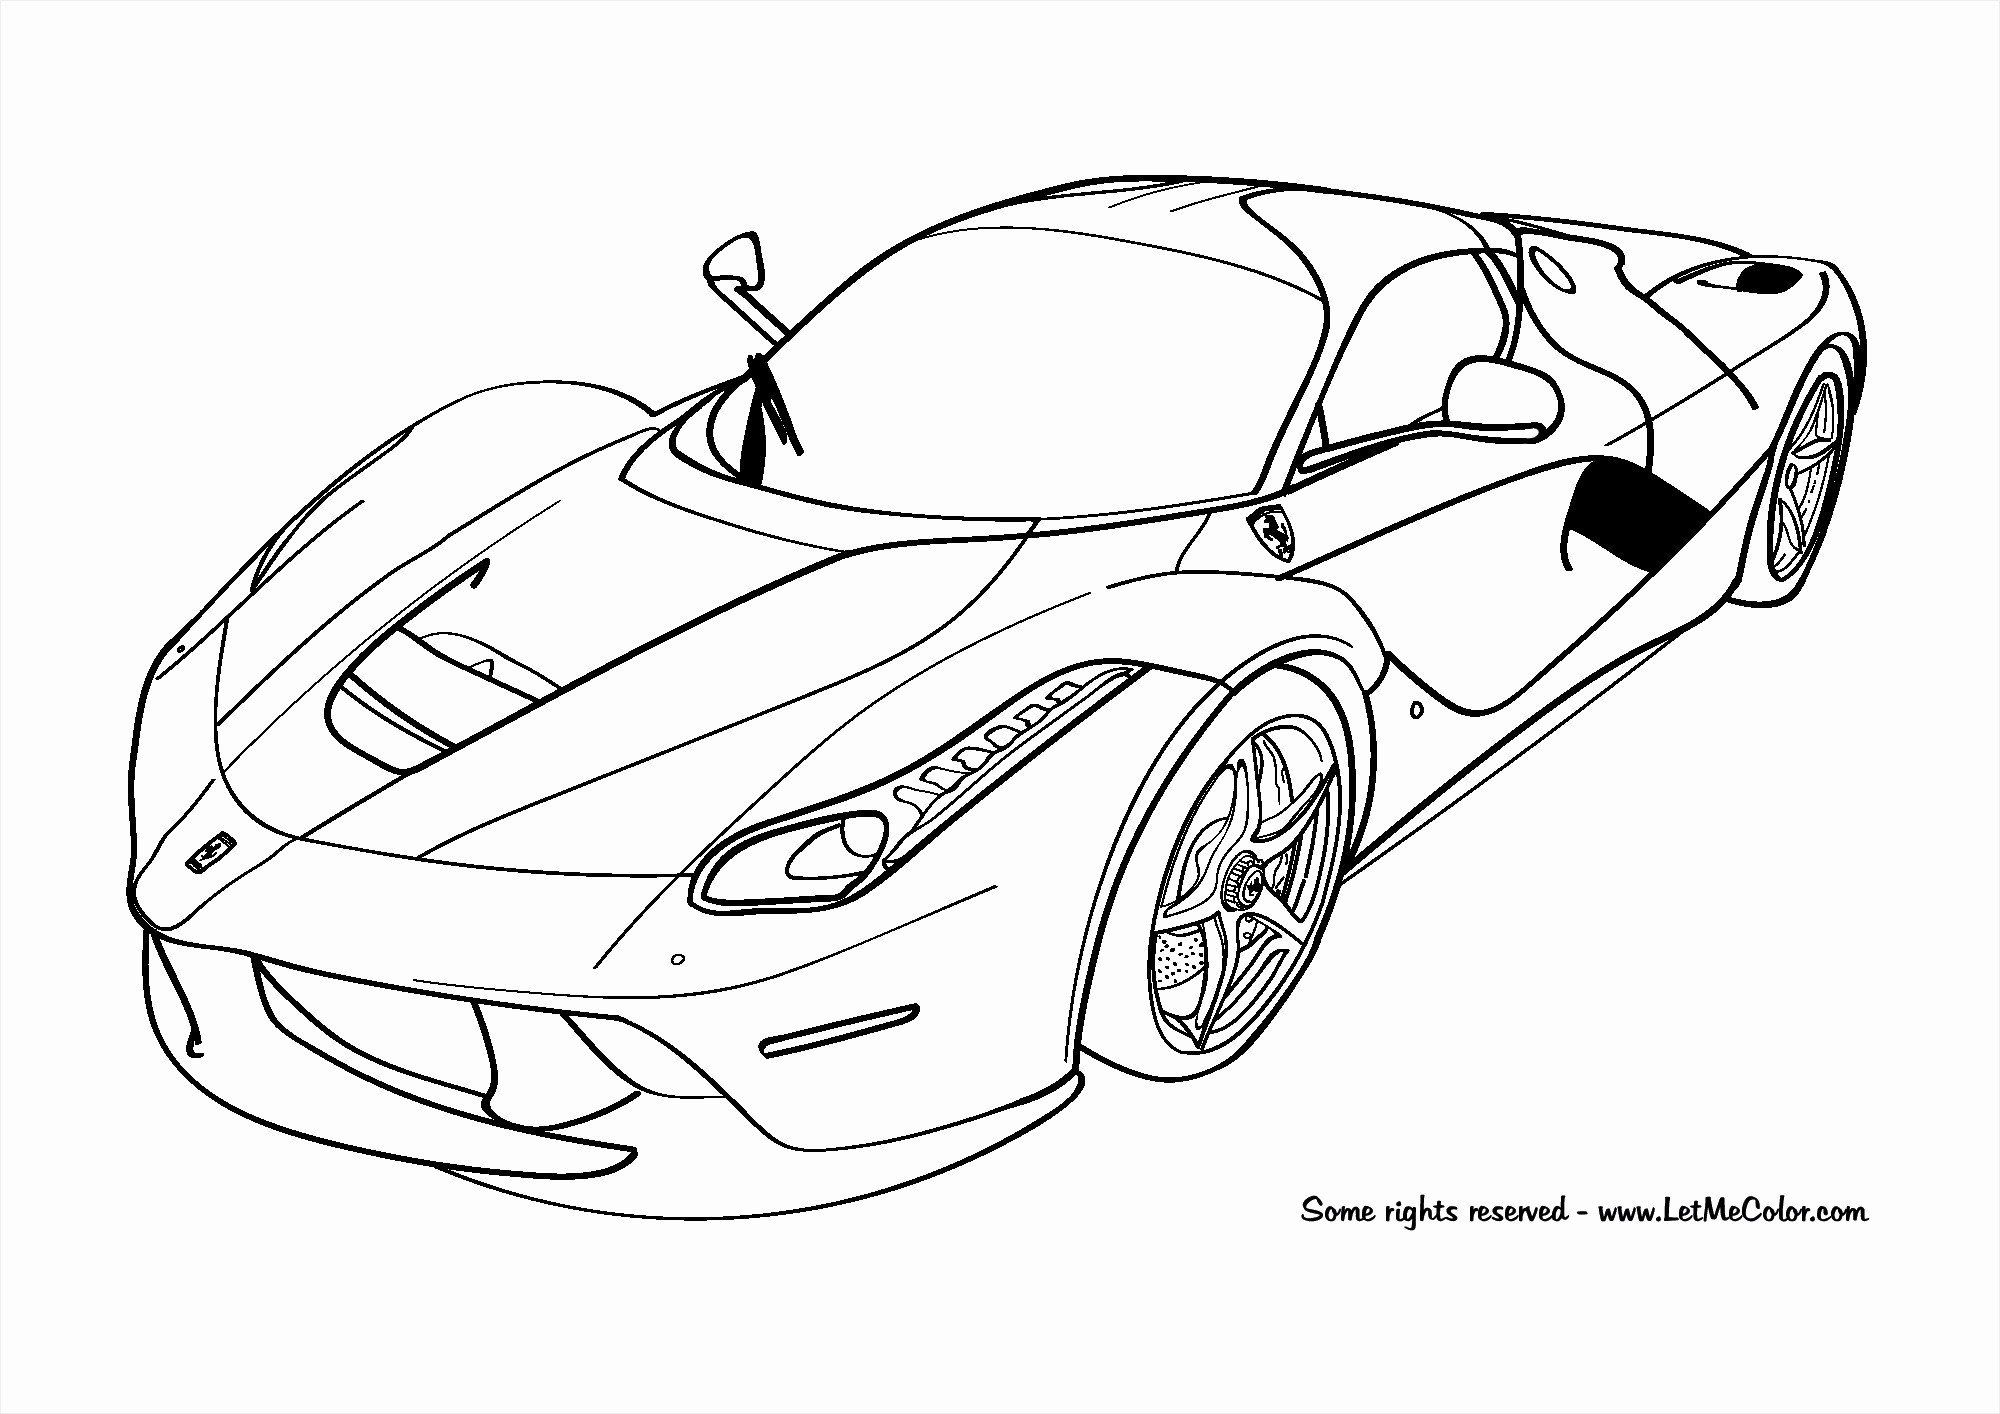 Cars 2 Coloring Pages Lovely Luxury Black and White Jaguar Coloring Page –  Kursknews   Cars coloring pages, Sports coloring pages, Race car coloring  pages